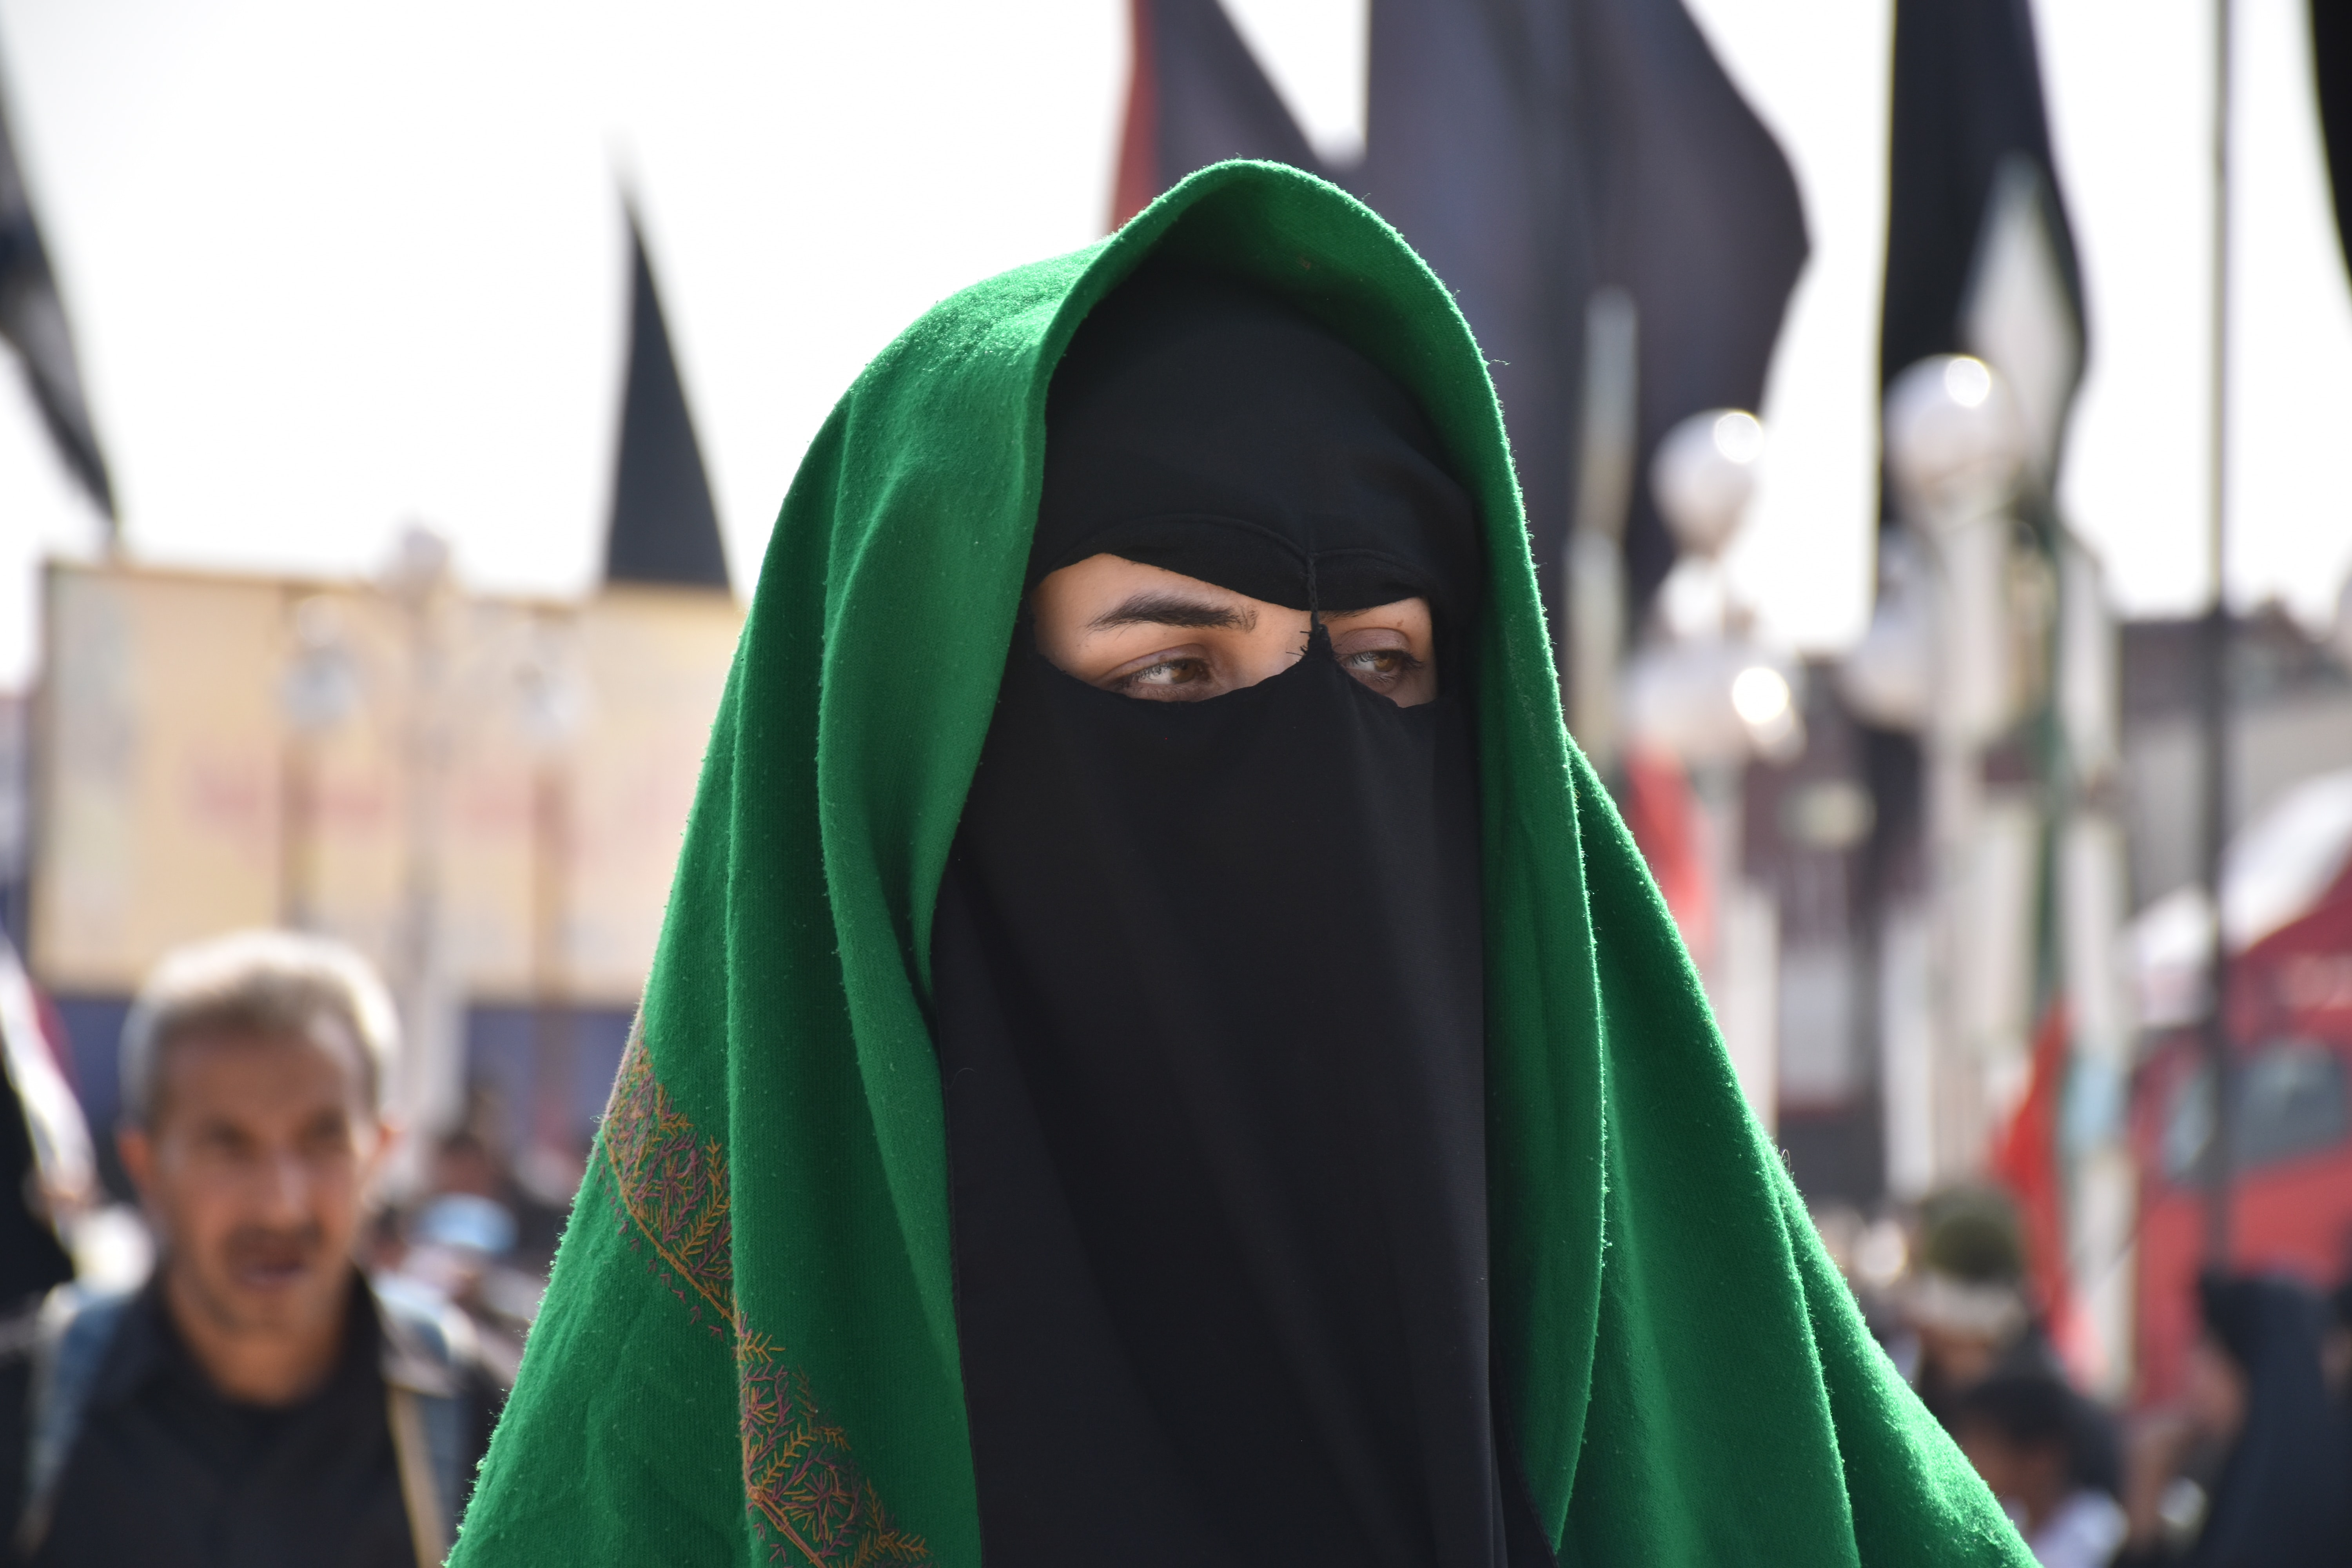 tilt-shift lens photography of a woman wearing black and green mask